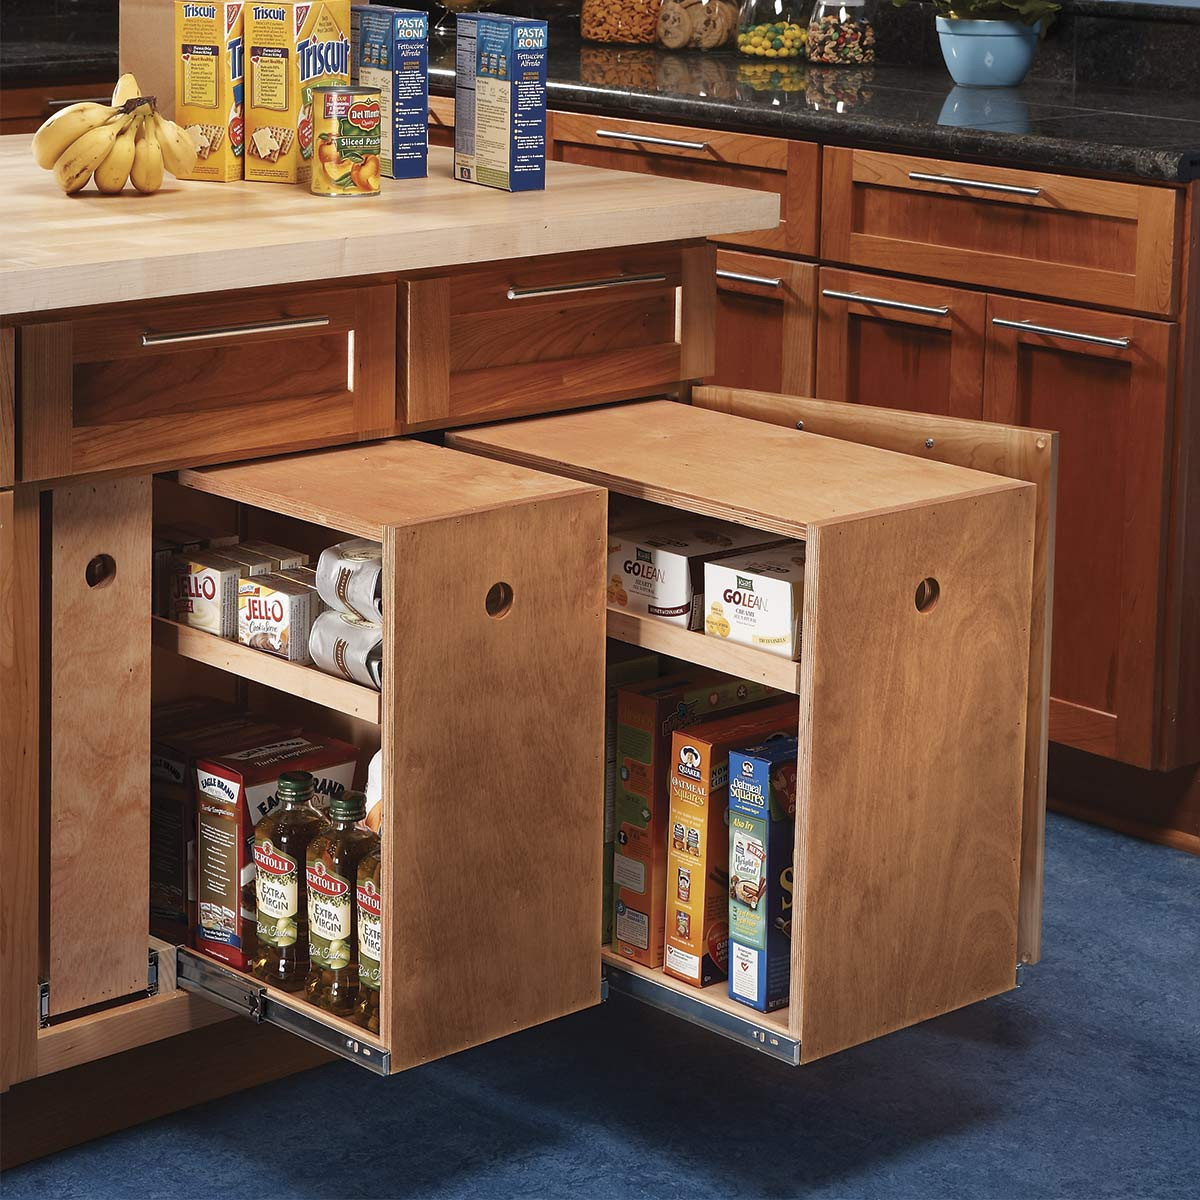 Best ideas about Kitchen Cabinet Plans DIY . Save or Pin 30 Cheap Kitchen Cabinet Add s You Can DIY Now.